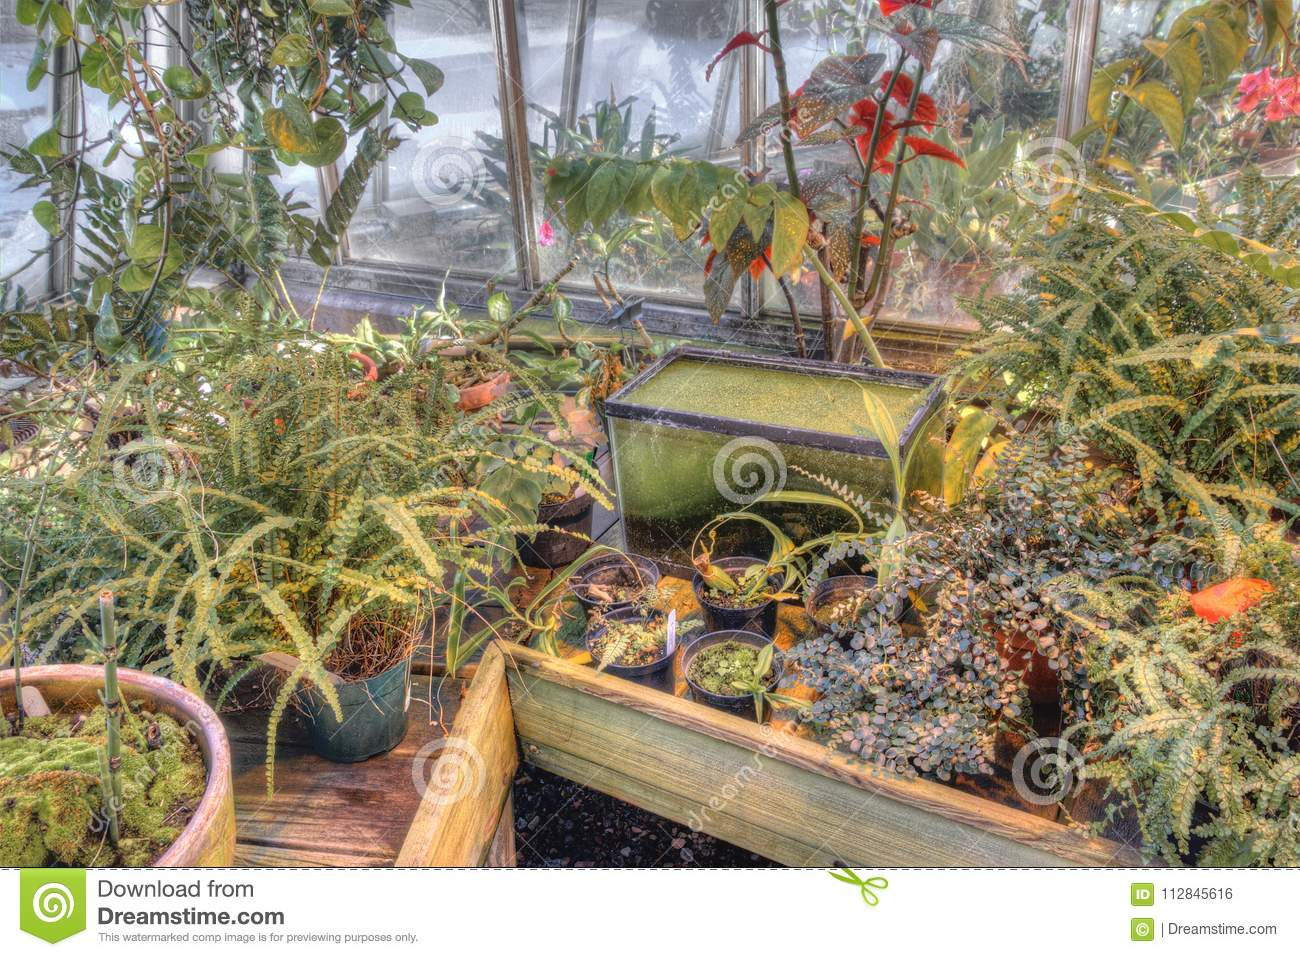 Plants Growing In A Greenhouse In Winter Stock Photo - Image ... on winter potted plants, winter shade plants, winter blooming plants, winter porch plants, winter container plants, winter hibiscus, winter yard plants, winter deck plants, winter perennial plants, winter interest plants, winter flowering plants, winter fragrant plants, winter house landscaping, winter planter plants, winter house art, winter hardy plants, winter outdoor plants, winter house cookies, great winter plants, winter patio plants,